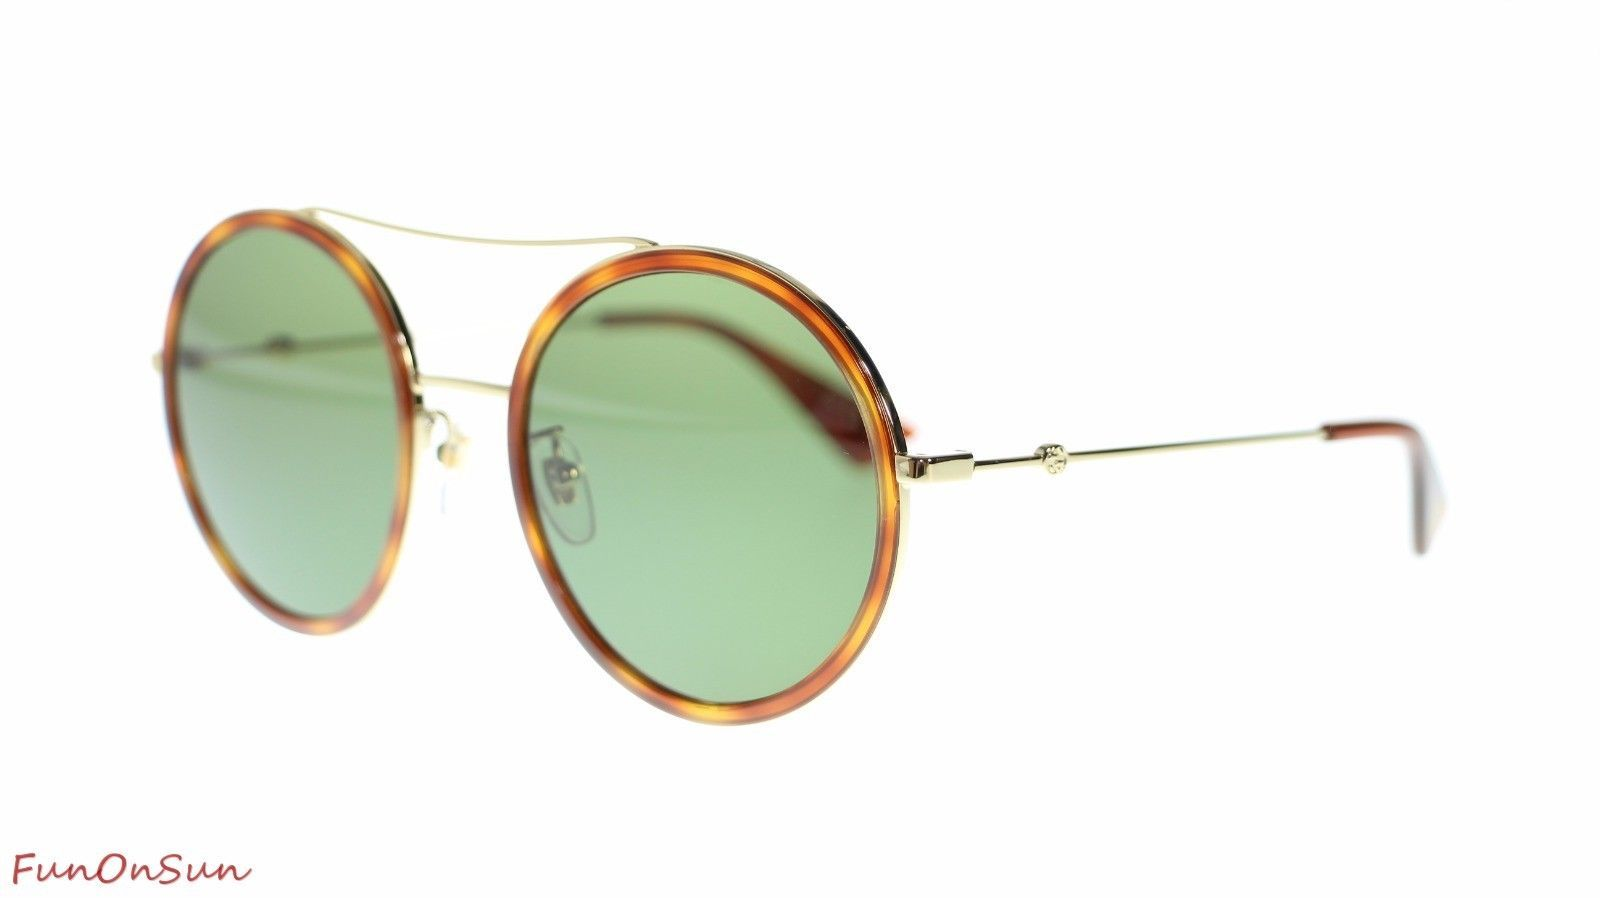 2230b578bf67c S l1600. S l1600. Previous. Gucci Women Round Sunglasses GG0061S 002 Gold Green  Lens 56mm Authentic